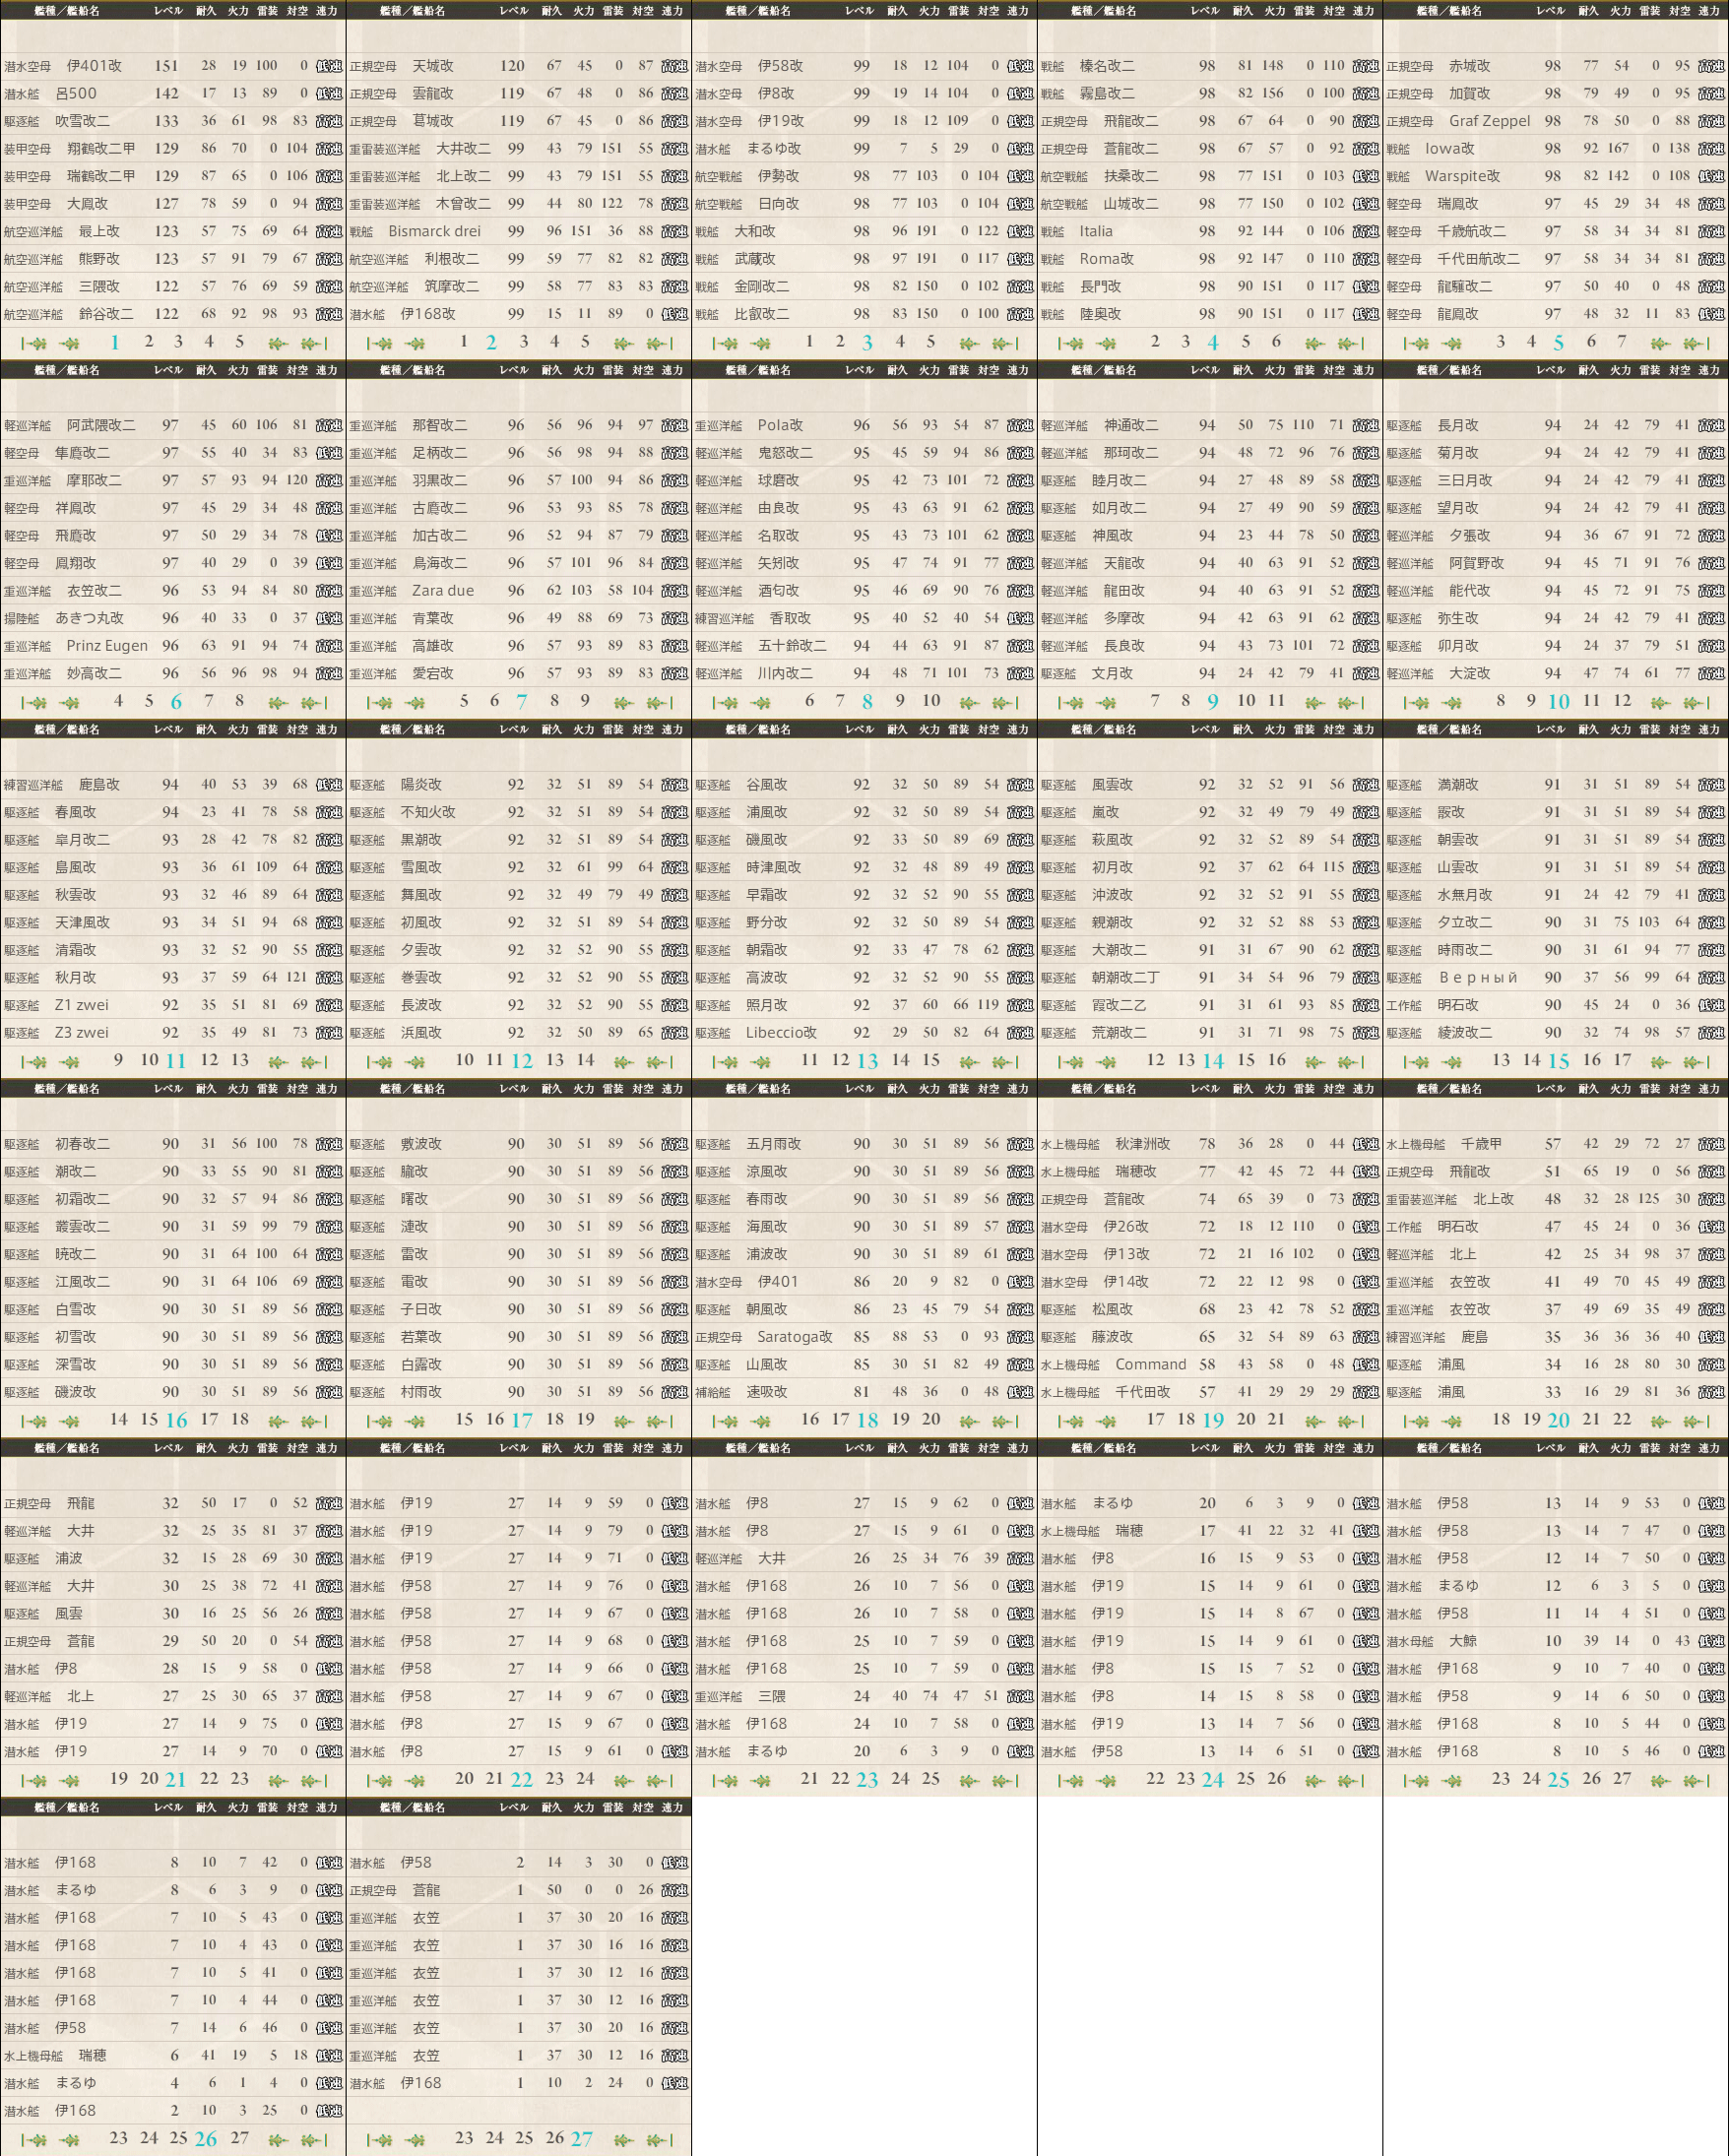 data.kancolle.levelsort.20170423.png